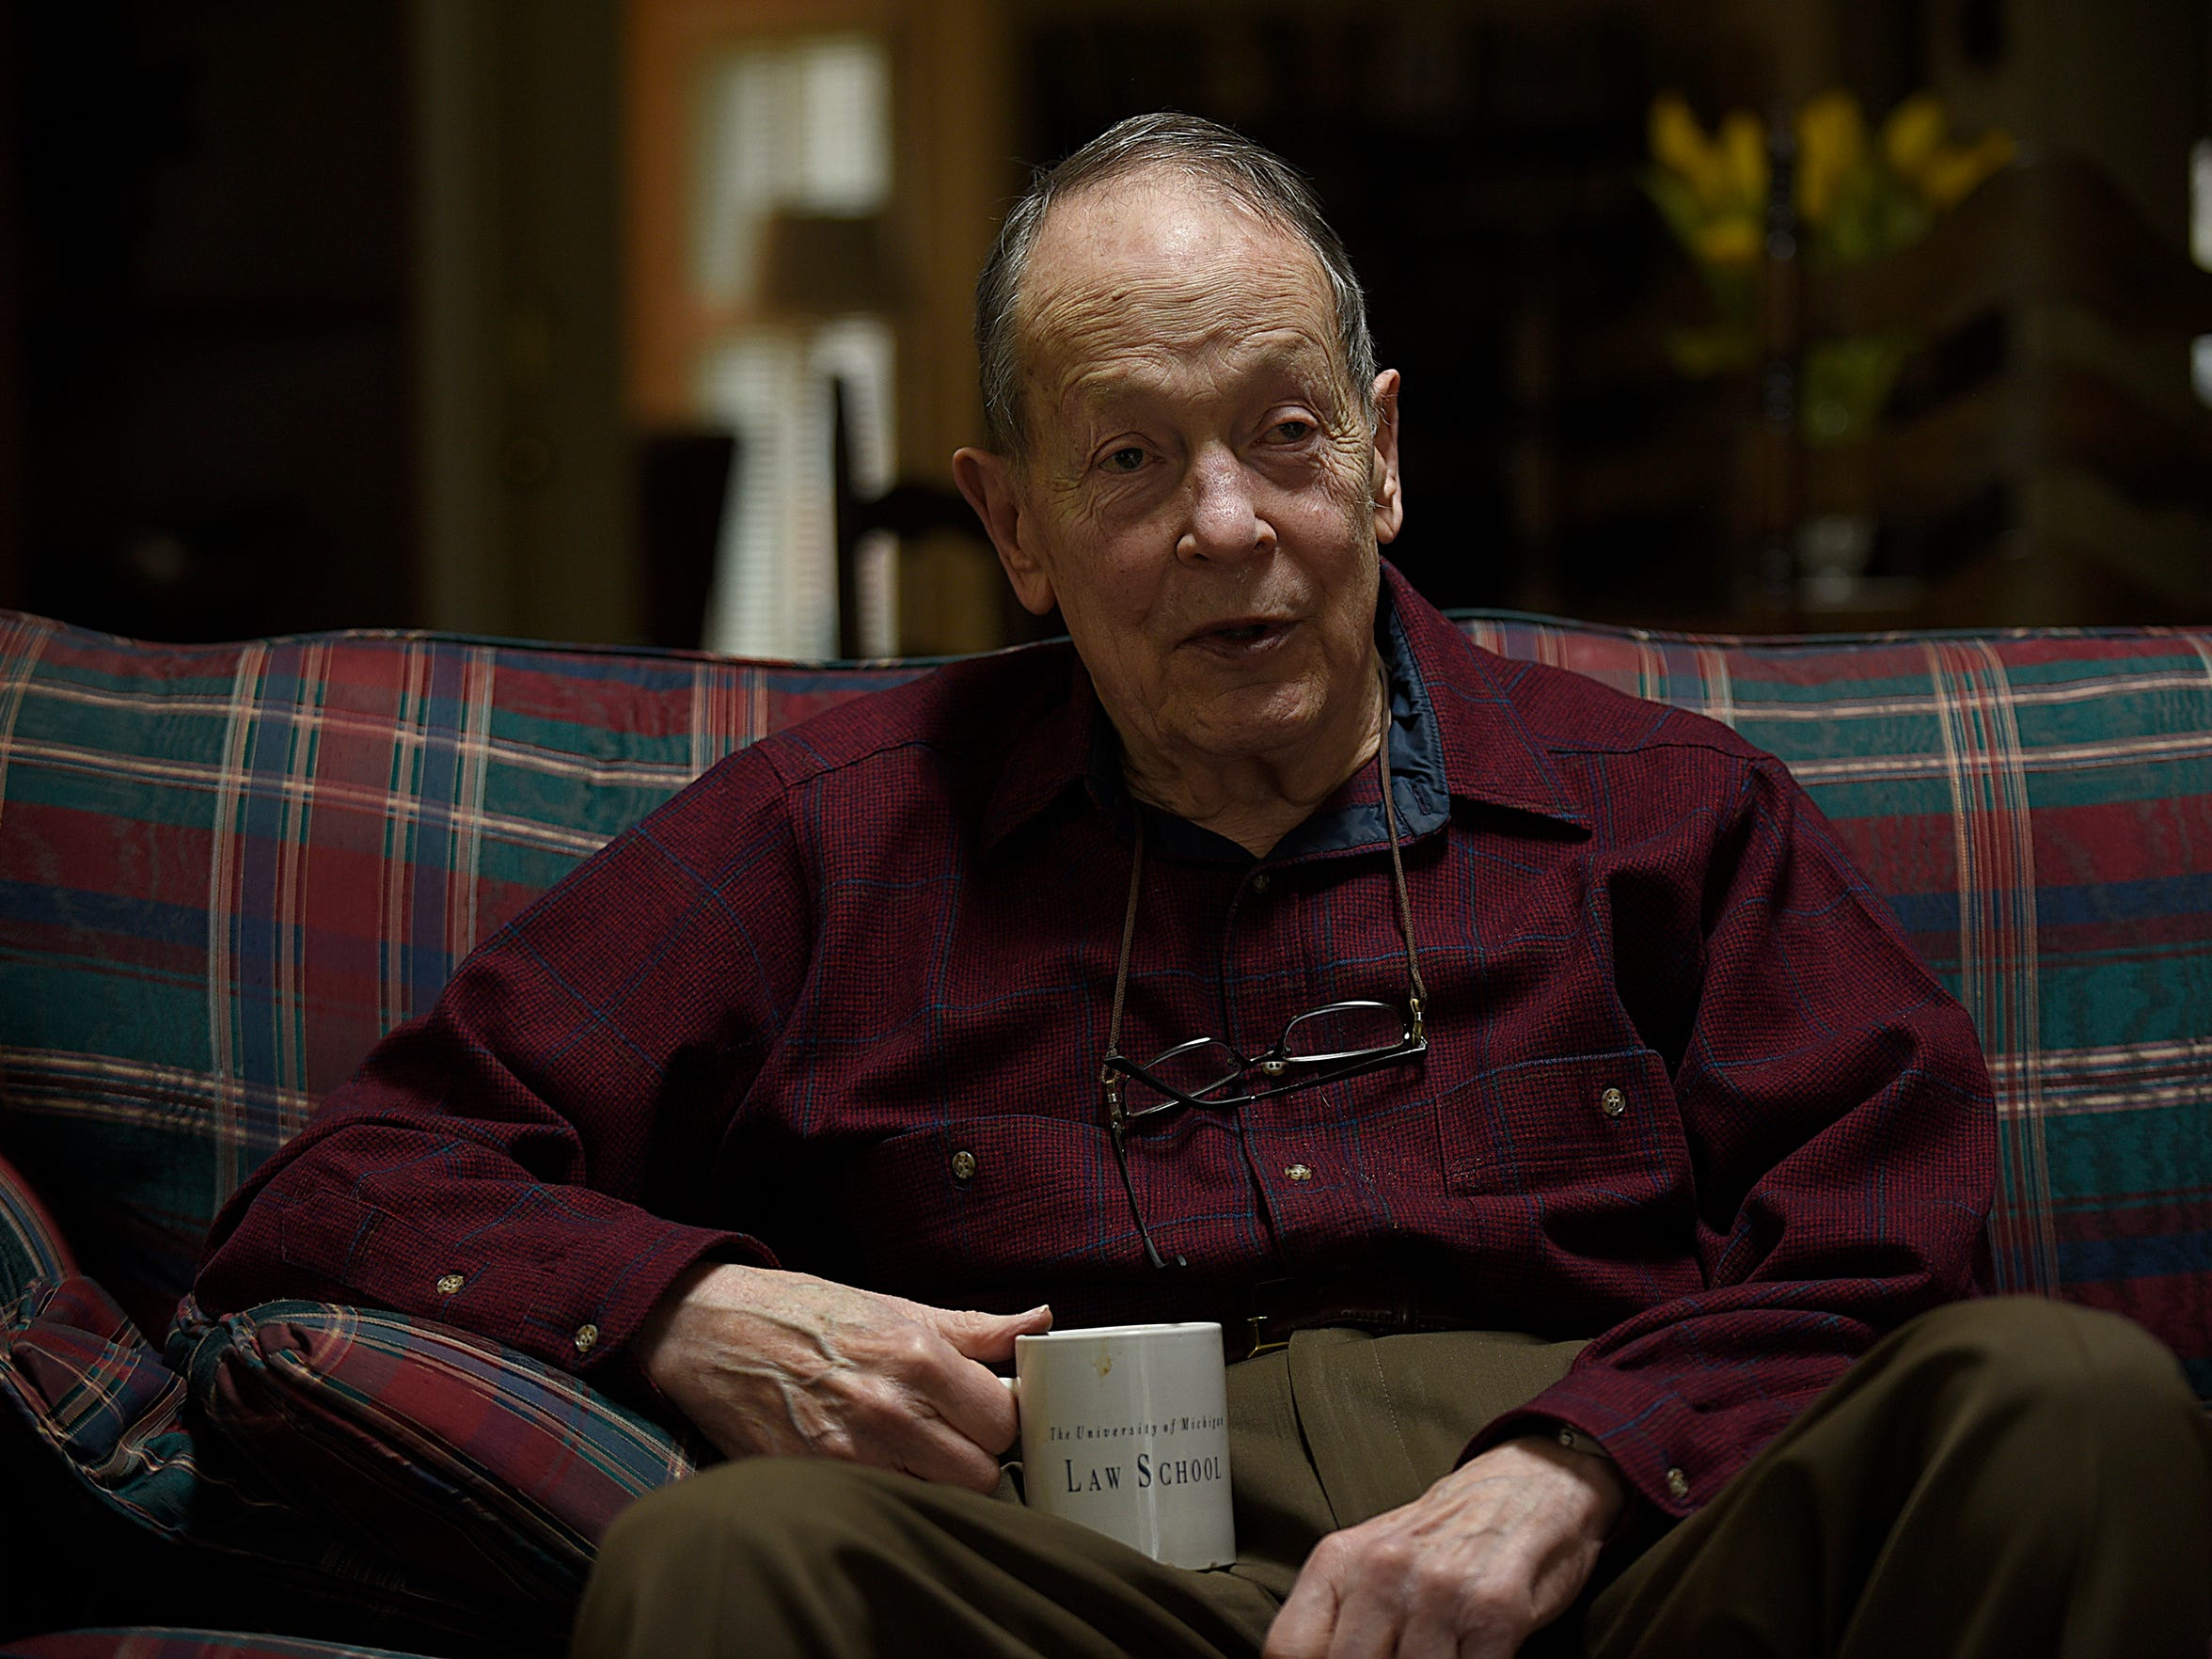 Barry King, 86, at his home in Birmingham. He doubts